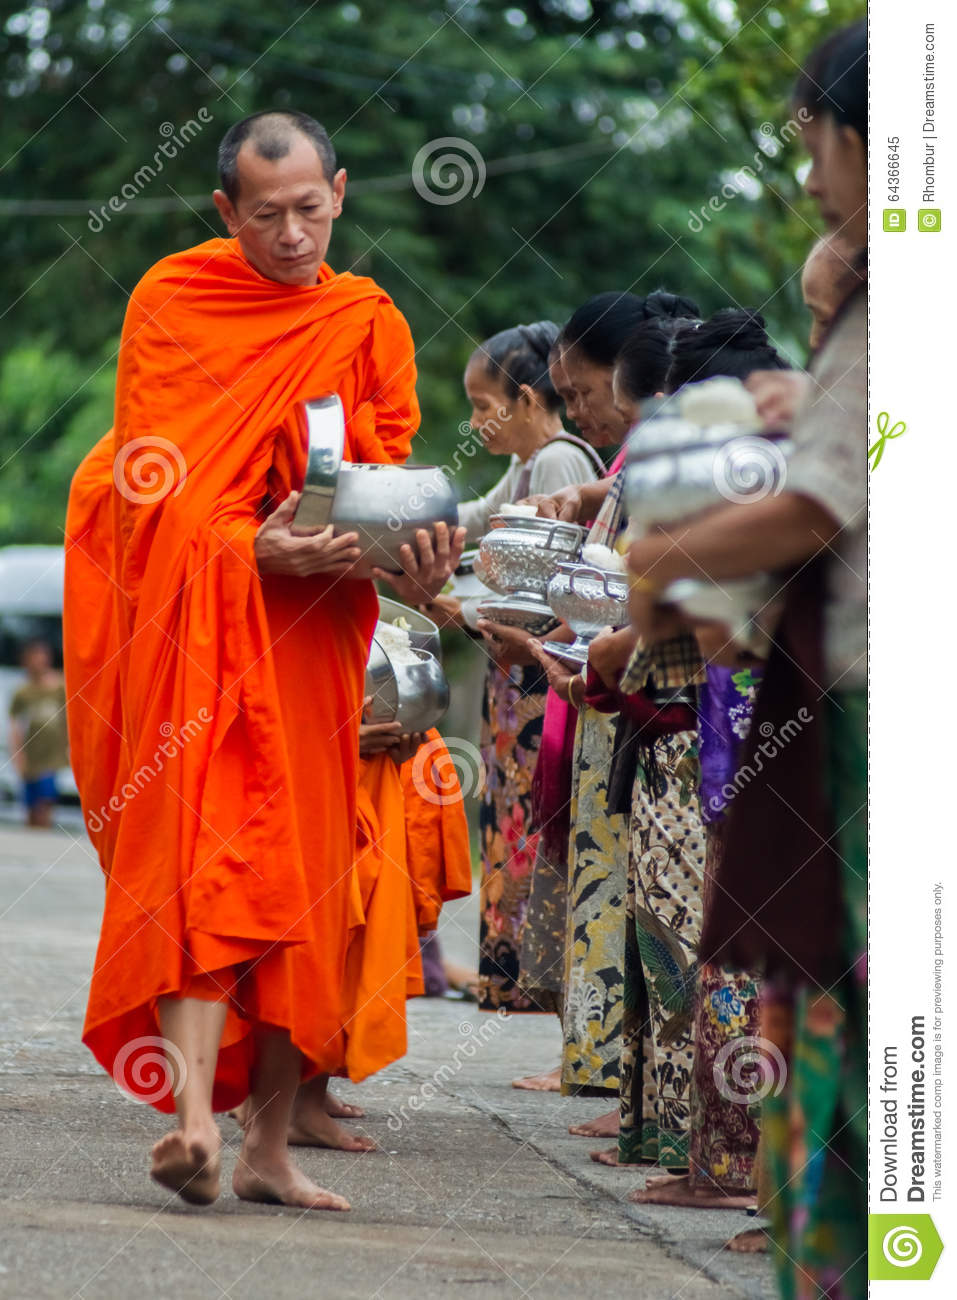 Buddhist monks at their morning almsround